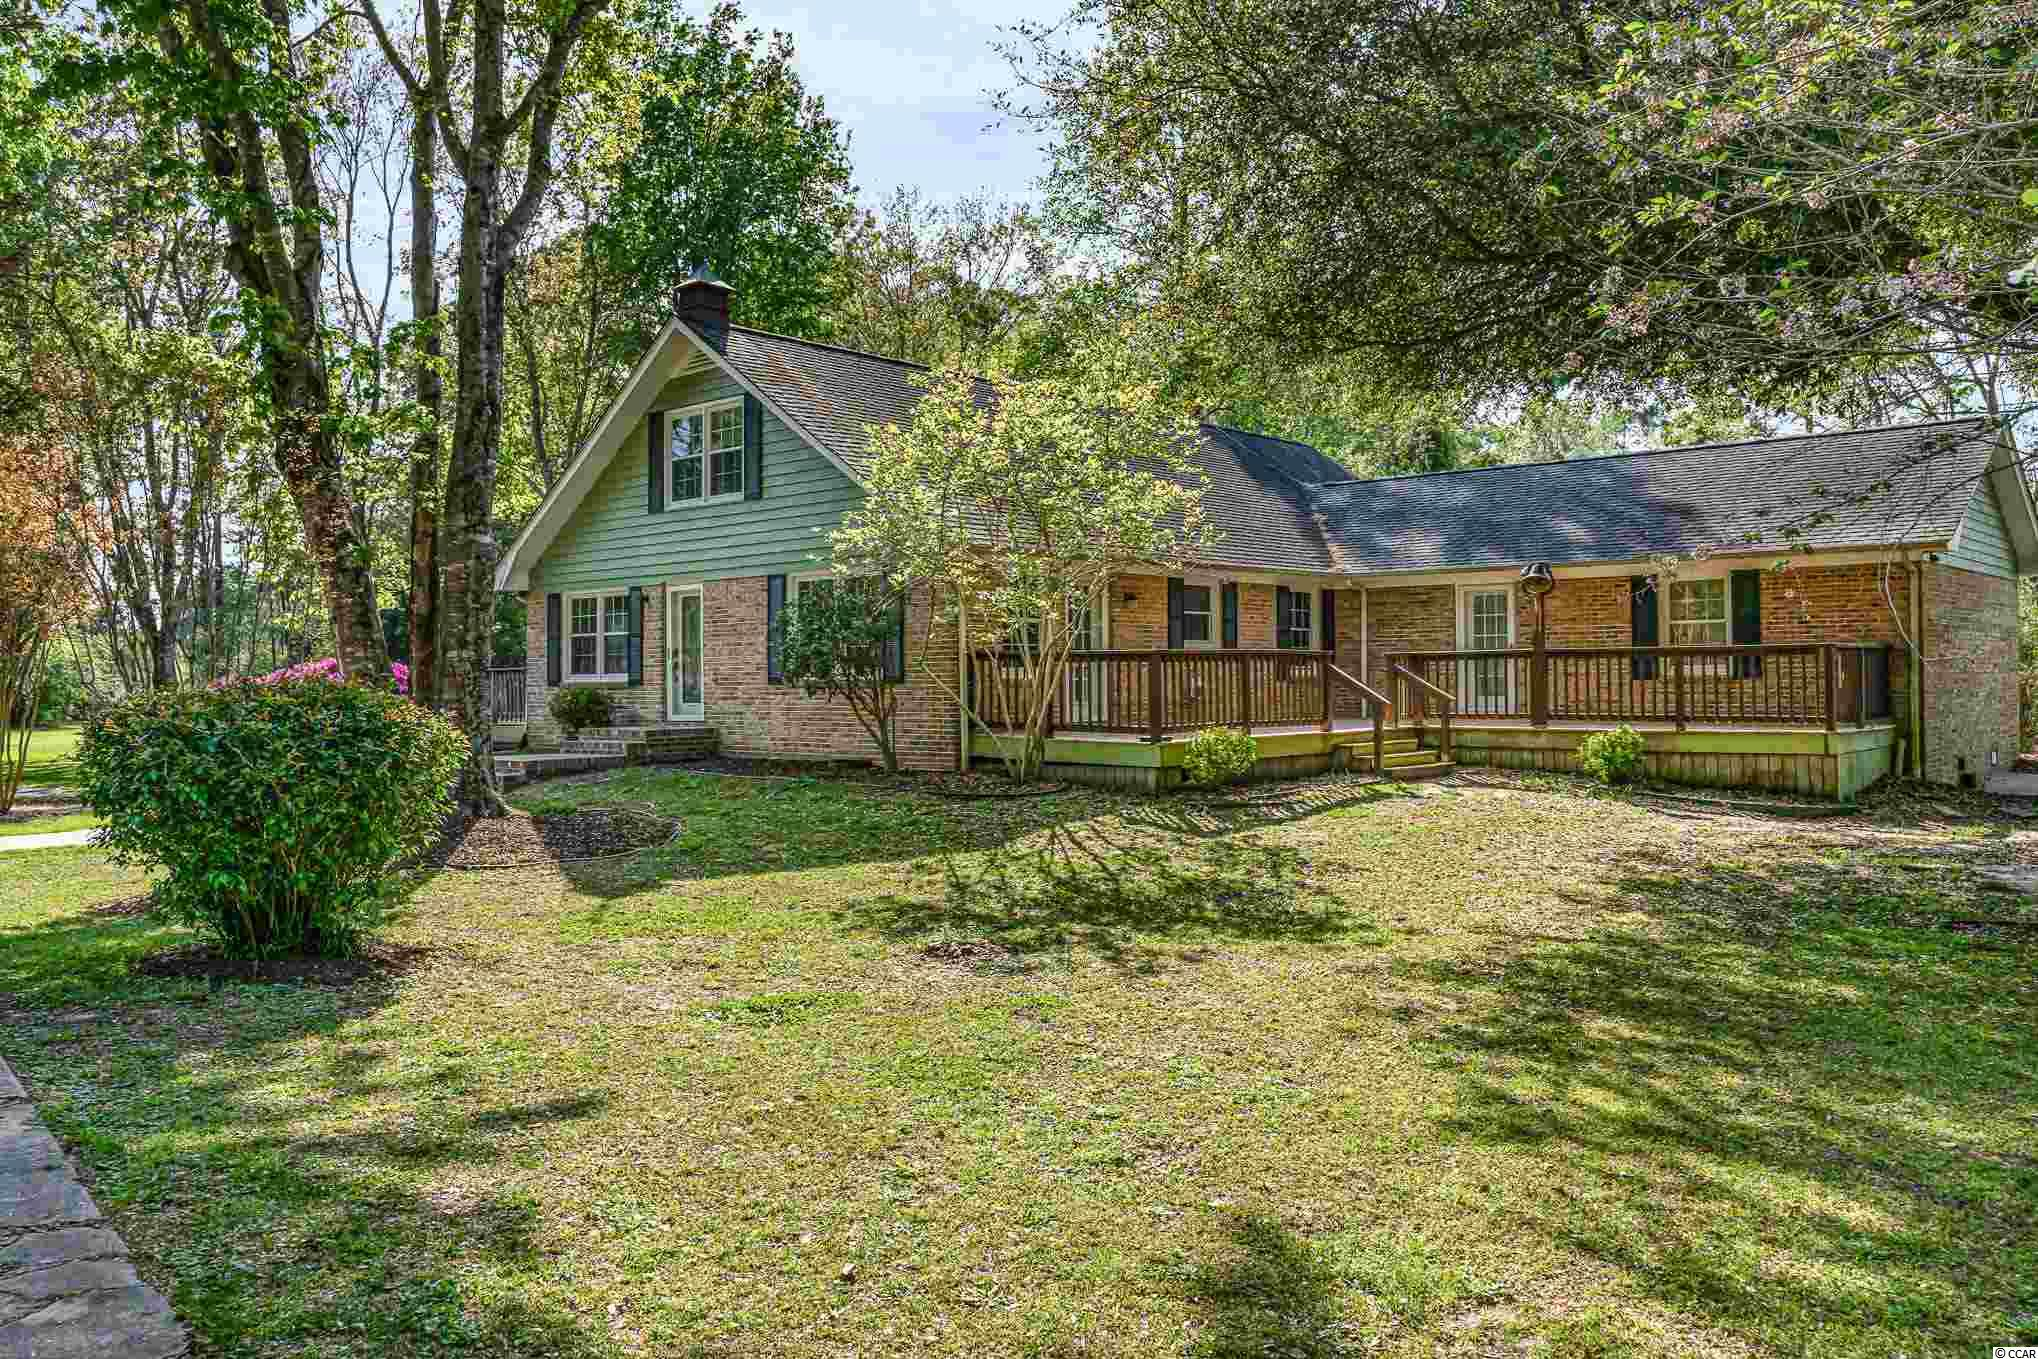 A RARE OPPORTUNITY TO FIND 2 ACRES IN MURRELLS INLET WITH NO HOA!  COME SEE THIS TREASURE.    YOU'LL  FEEL LIKE YOU ARE IN THE COUNTRY BUT CLOSE TO BEACH, SHOPPING, RESTAURANTS, THE MARSH WALK IN MURRELLS INLET AND MEDICAL FACILITIES.  SCHEDULE AN APPOINTMENT TO VIEW THIS UNIQUE PROPERTY AT 5613 ROSEHALL DRIVE. THIS BRICK 5 BEDROOM, 4 BATH HOME HAS ENDLESS POSSIBILITIES FOR YOUR LARGE FAMILY AND PLENTY OF ROOM FOR YOUR EXTENDED FAMILY.  YOU WILL ENJOY YOUR ESTABLISHED YARD WITH BEAUTIFUL AZALEA BUSHES, DOGWOOD TREES, PLUM TREE, FIG BUSH, BLUEBERRY BUSHES, GRAPE HARBOR AND 2 LIVE OAK TREES FROM YOUR 2 DECKS AND SCREENED PORCH WHILE HAVING YOUR MORNING COFFEE. BEAUTIFUL WOODED CEILING IN THE LIVING ROOM & DINING ROOM.  FIRST FLOOR MASTER SUITE (WITH GAS FIREPLACE) THAT INCLUDES SEPARATE SITTING AREA (WITH CLOSETS), THAT COULD ALSO BE USED AS OFFICE OR EVEN A NURSERY & A SCREENED PORCH OFF MASTER BEDROOM.  TWO MORE BEDROOMS ARE ON FIRST FLOOR: ONE BEDROOM WITH PRIVATE FULL BATH.  THERE ARE 2 LARGE ROOMS UPSTAIRS  (ONE BEDROOM FEATURES BUILT-IN SHELVES) AS WELL AS FULL BATHROOM.  ENTER INTO YOUR SPACIOUS LIVING ROOM (24'X21') WITH LOTS OF NATURAL LIGHT THAT LOOKS OUT TO YOUR DECK AND BEAUTIFUL BACKYARD.  THERE IS ALSO A (24'X21') FAMILY ROOM WITH GAS FIREPLACE & SEPARATE ENTRANCE OFF FRONT DECK.  THERE ARE TWO LAUNDRY AREAS OR ONE CAN BE USED AS A CLOSET.  THE INTERIOR HAS JUST BEEN PAINTED, FIRST LEVEL WOOD FLOORS REFINISHED, 2 NEW SLIDING GLASS DOORS IN LIVING ROOM, NEW LIGHT FIXTURES, ALL NEW WINDOWS AND DOORS, NEW KITCHEN SINK, KITCHEN COUNTERS REFINISHED, BATHROOMS UPDATED, 3 HVAC UNITS -- MAIN FLOOR UNIT JUST REPLACED. *HOT TUB, GUN SAFE AND BELL ON DECK DO NOT CONVEY.* LARGE DETACHED GARAGE/WORKSHOP WITH SCREENED PORCH WITH MANY USES (MAN CAVE, STORAGE)  AND AN ATTACHED SCREENED PORCH FOR A SUMMER KITCHEN FOR FAMILY COOKOUTS.  THERE ARE 2 DRIVEWAYS FOR PARKING AS WELL AS LOTS OF ROOM FOR RV, BOAT, CAMPER.  THIS PROPERTY LOCATED ON DEAD END STREET GIVES YOU PRIVAC